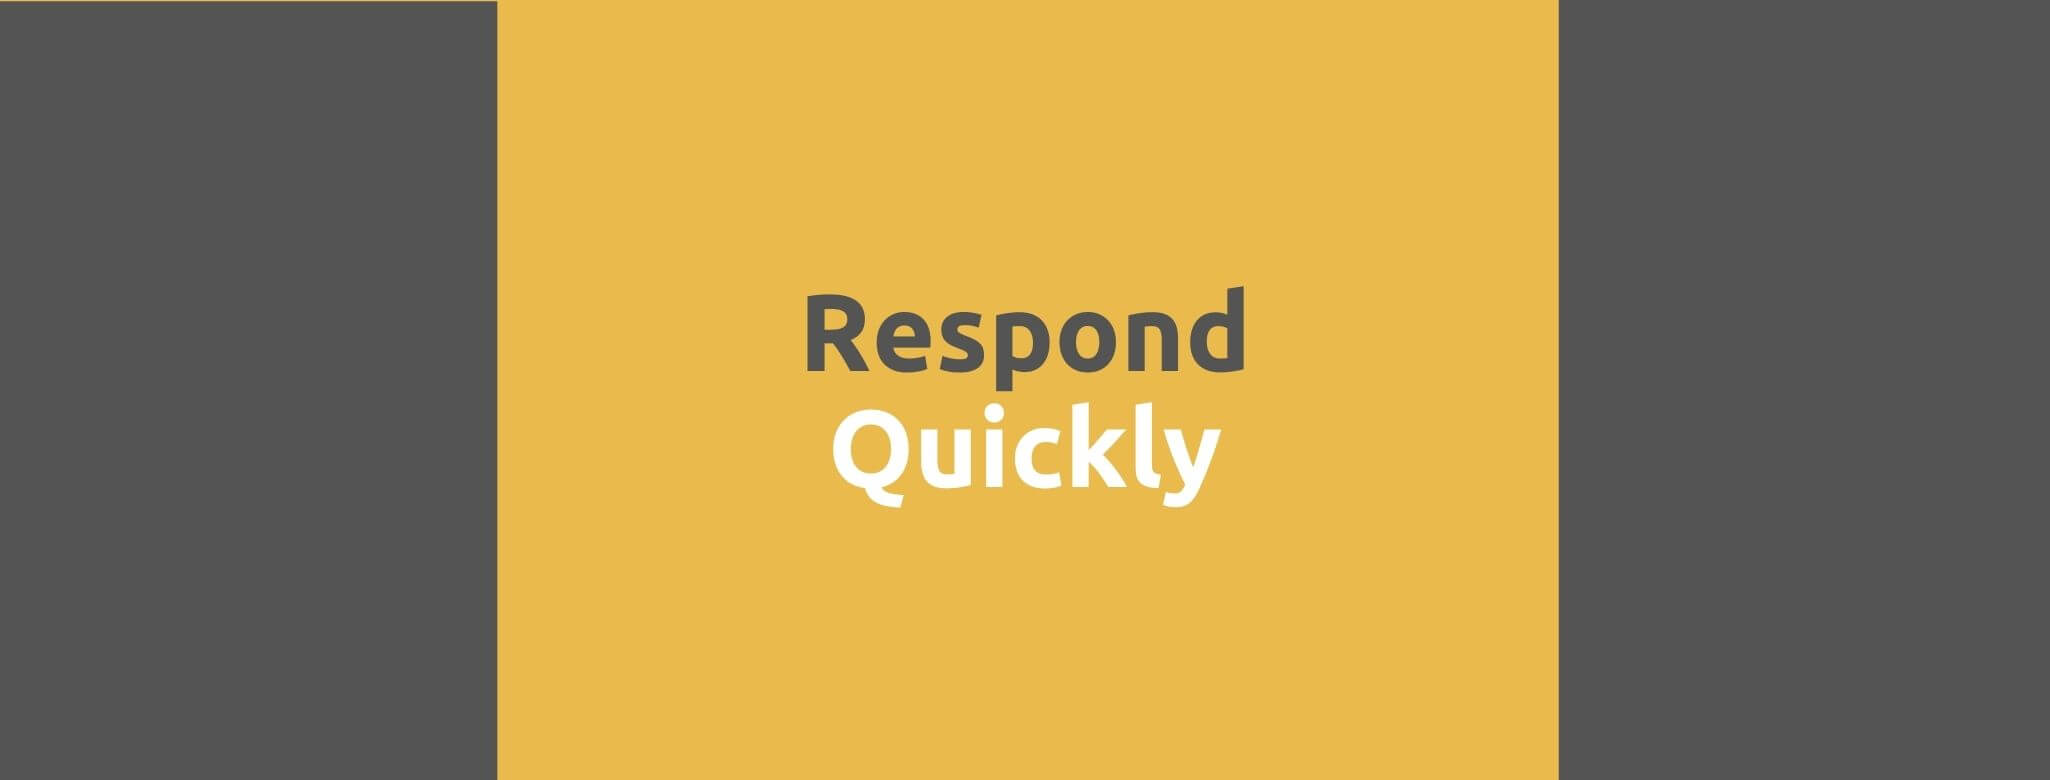 Respond Quickly - 35 Things Every Seller Should Do to Offer Great Customer Service - Replyco Helpdesk Software for eCommerce